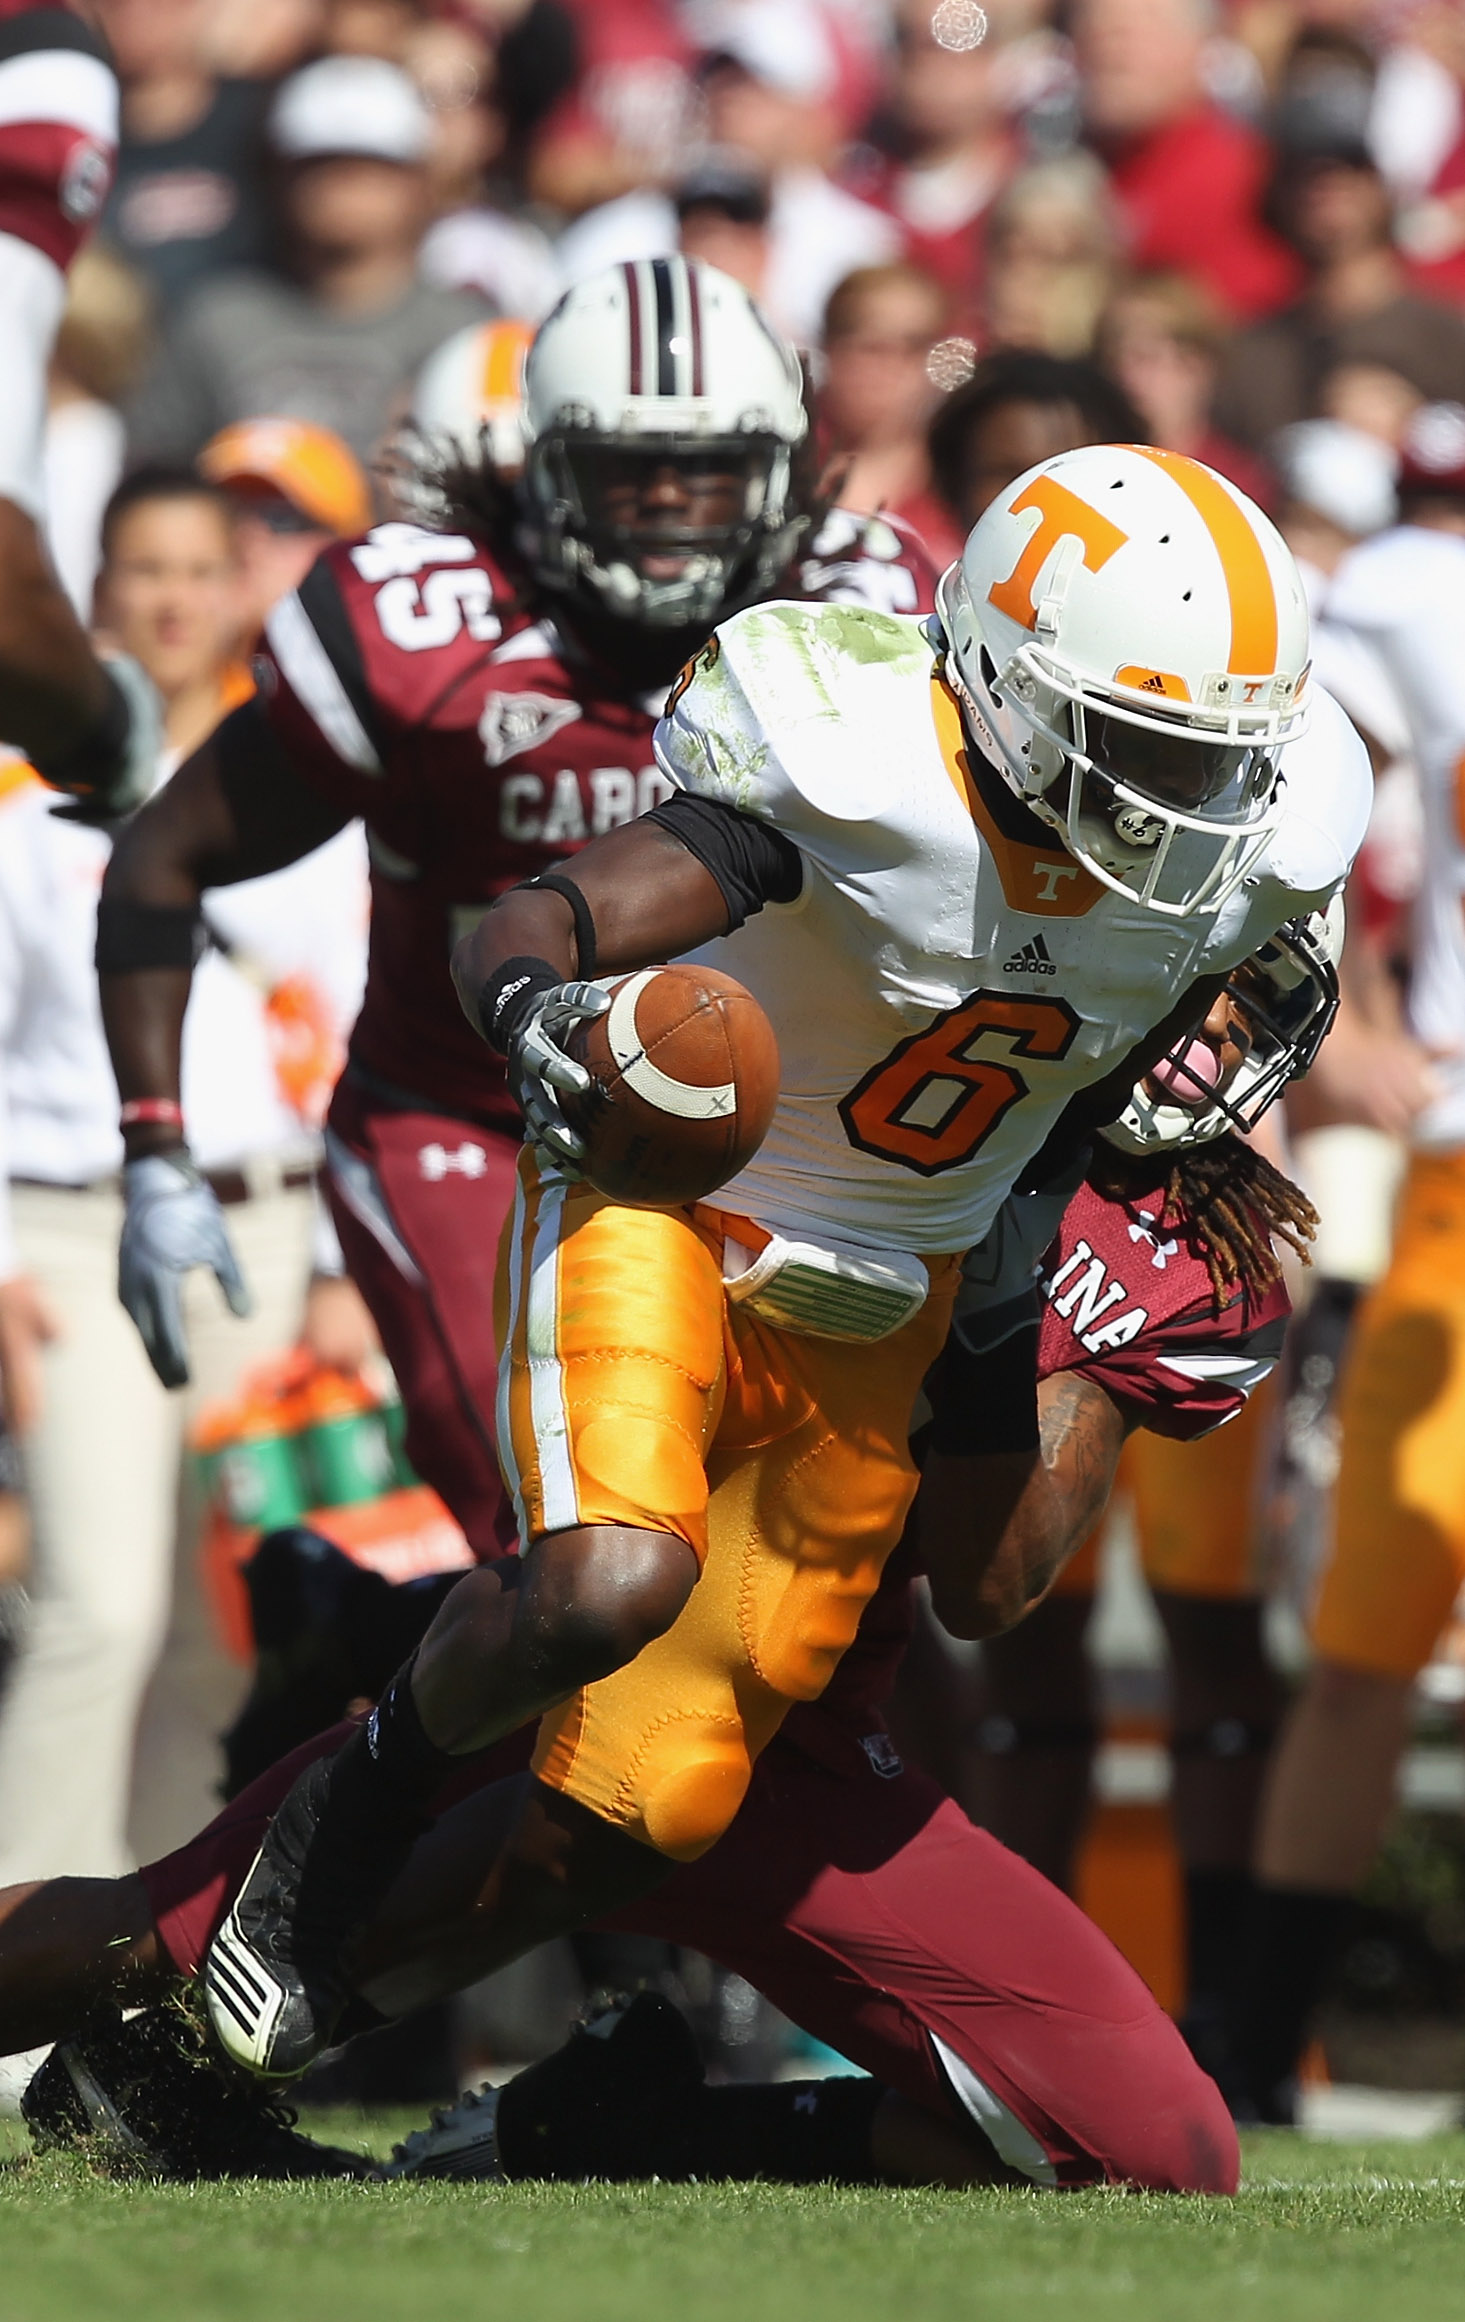 COLUMBIA, SC - OCTOBER 30:  Denarius Moore #6 of the Tennessee Volunteers is tackled by Melvin Ingram #6 of the South Carolina Gamecocks during their game at Williams-Brice Stadium on October 30, 2010 in Columbia, South Carolina.  (Photo by Streeter Lecka